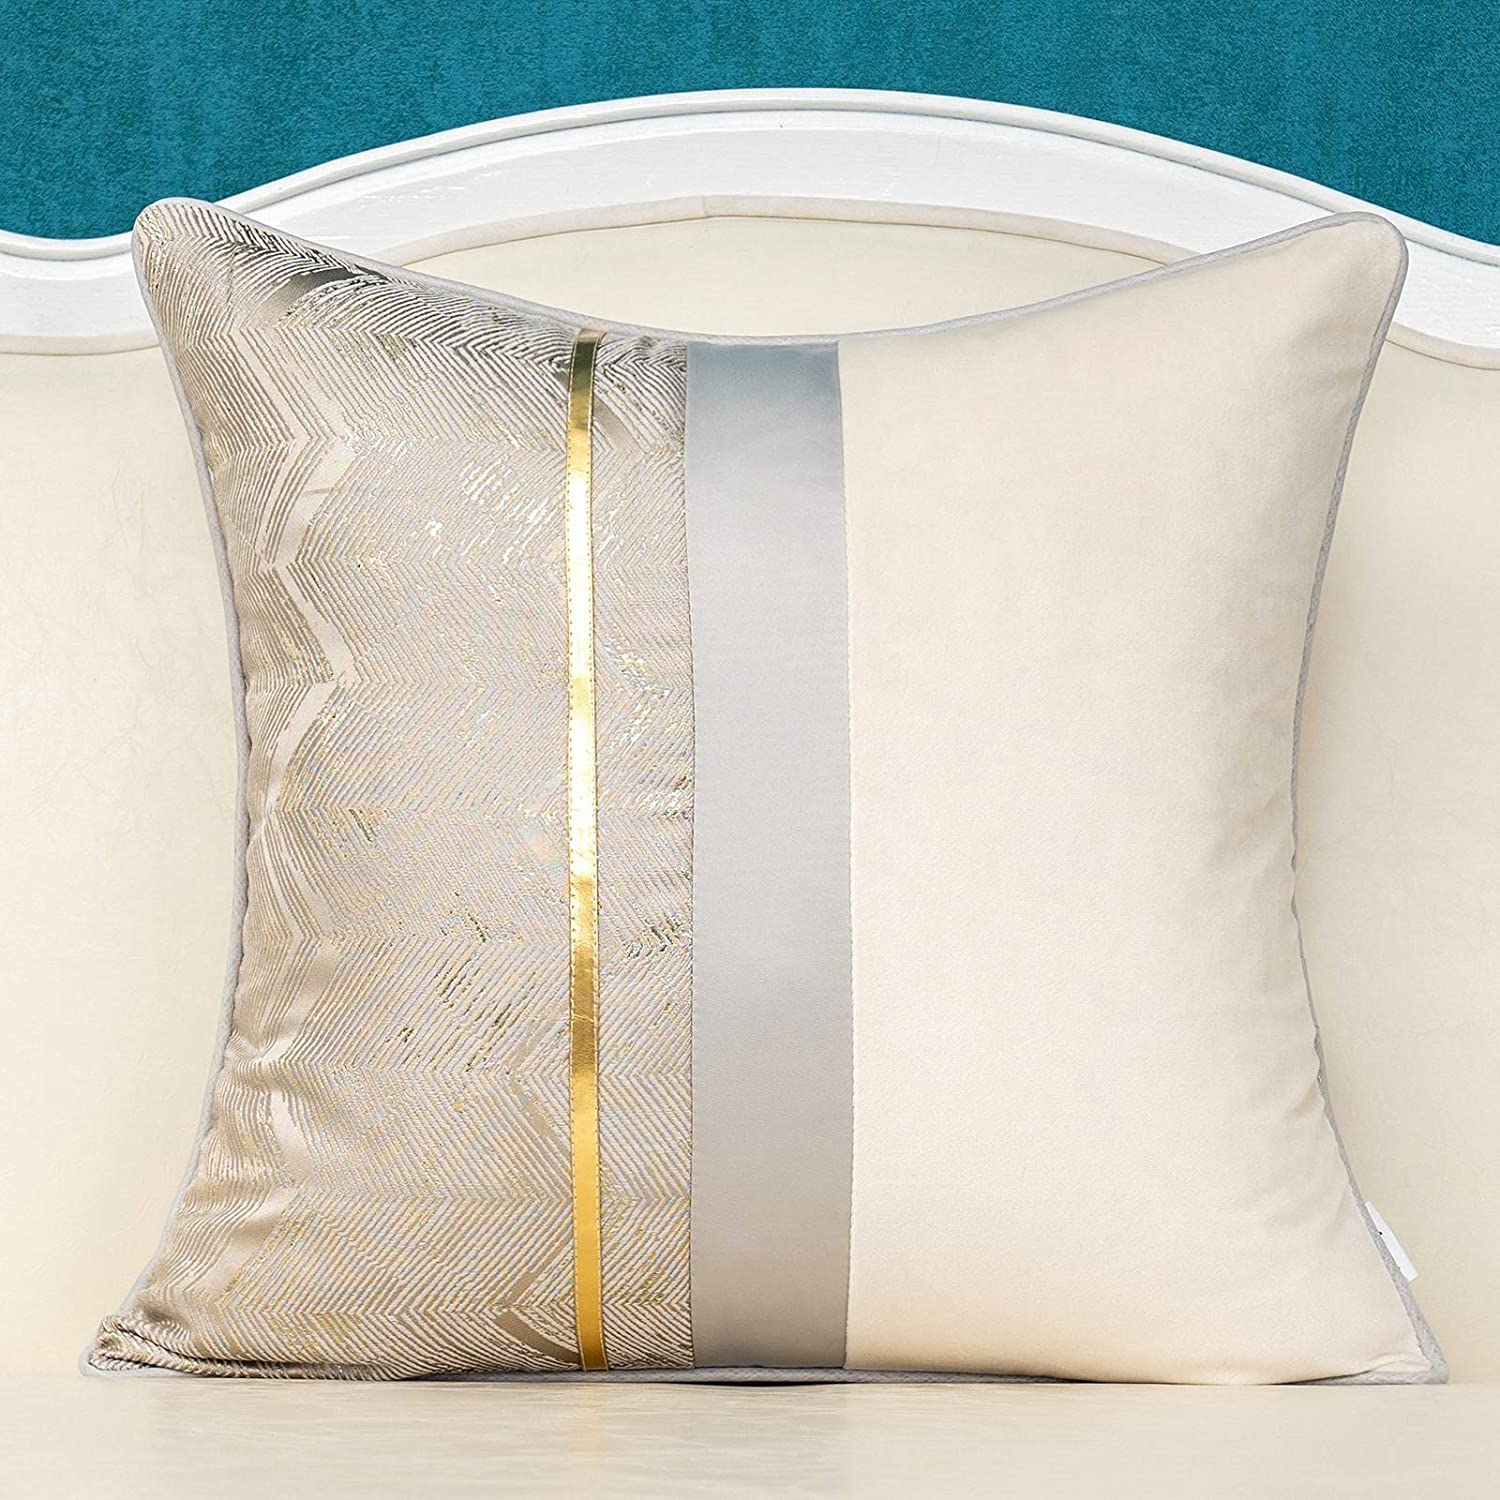 Alerfa 20 x 20 Inch Silver Gray White Geometric Striped Gold Leather Patchwork Velvet Cushion Case Luxury Modern Lumbar Throw Pillow Cover Decorative Pillow for Couch Sofa Living Room Bedroom Car